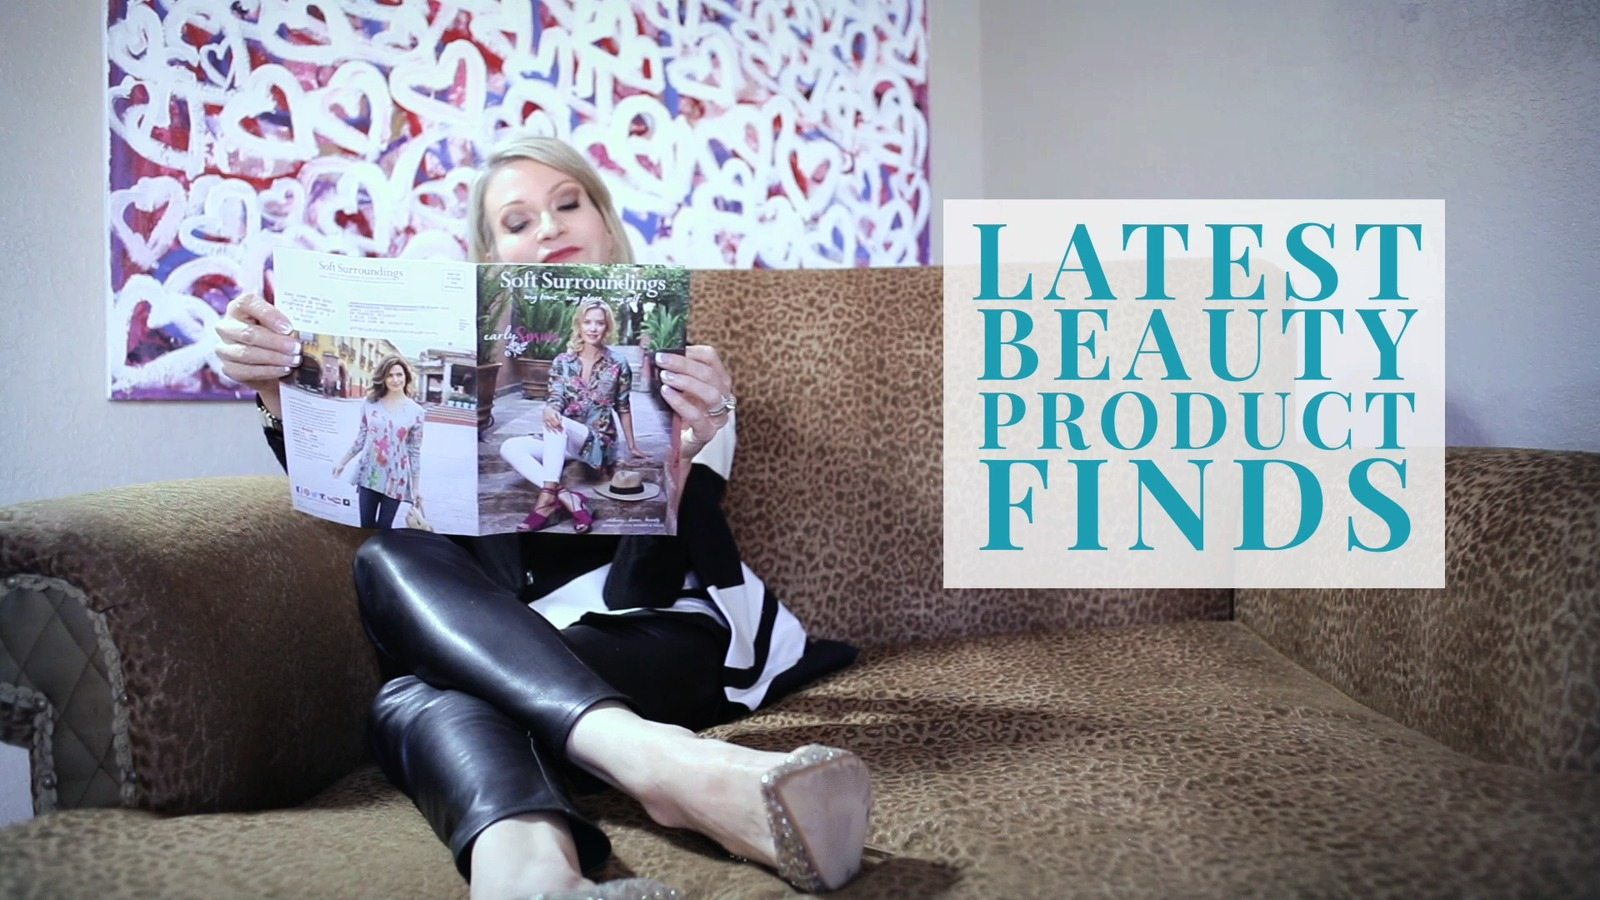 VIDEO ~ Latest Beauty Product Finds